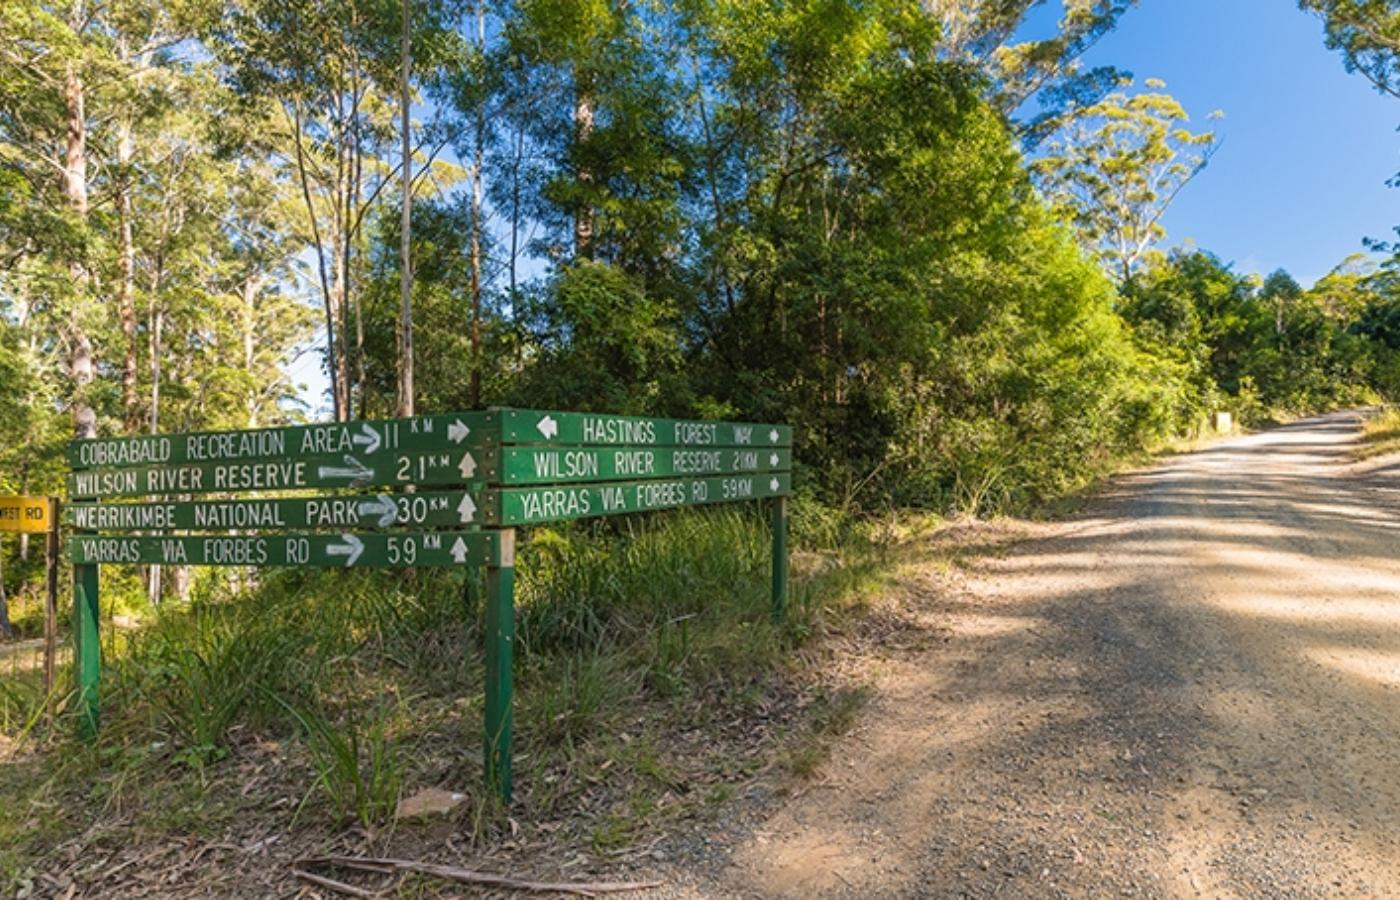 Wilson Reserve And Cobrabald Recreation Area Signage